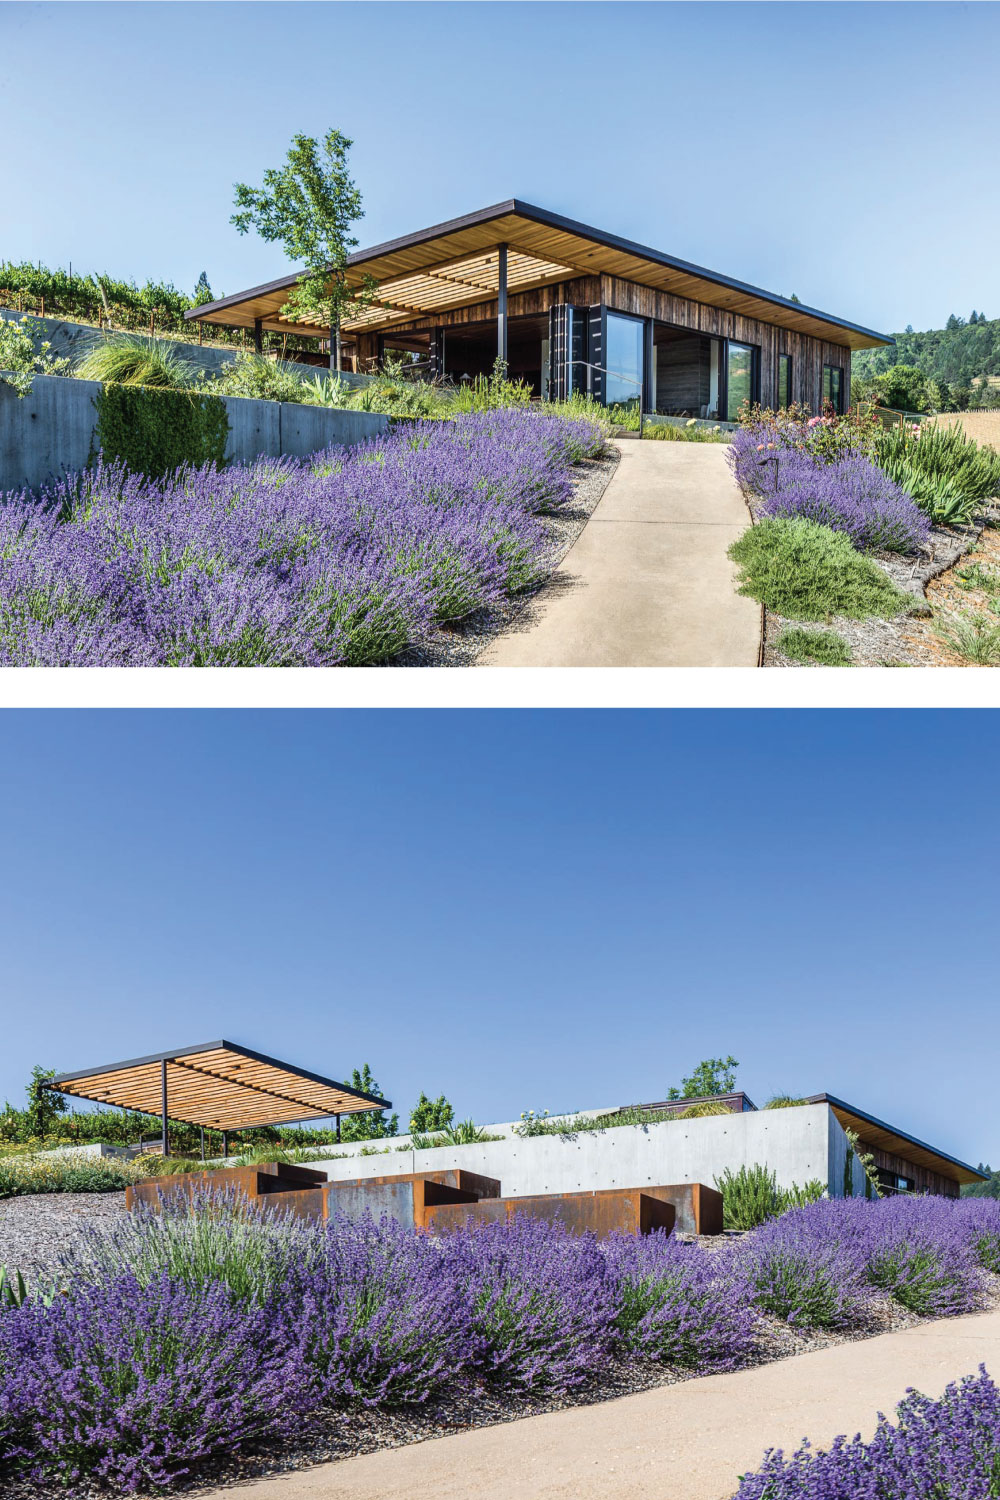 Fragrant lavender lines the path up to the house from the vineyard.